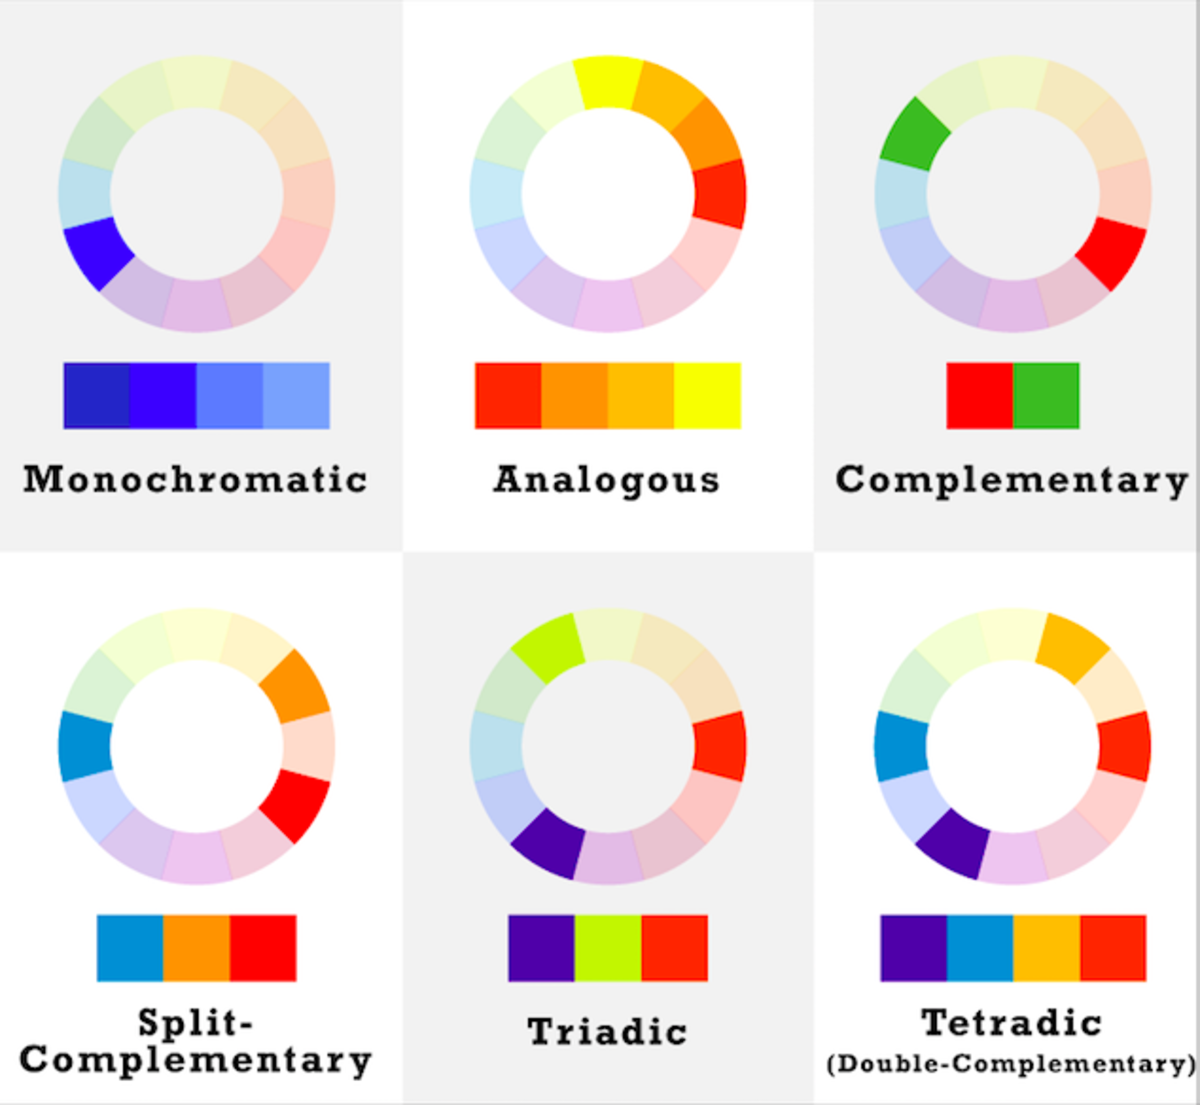 Color Harmony: Six basic color schemes as examples using a color wheel. From here, you can also add in color wheels that add white, gray, or black to adjust tints, shades, and tones.